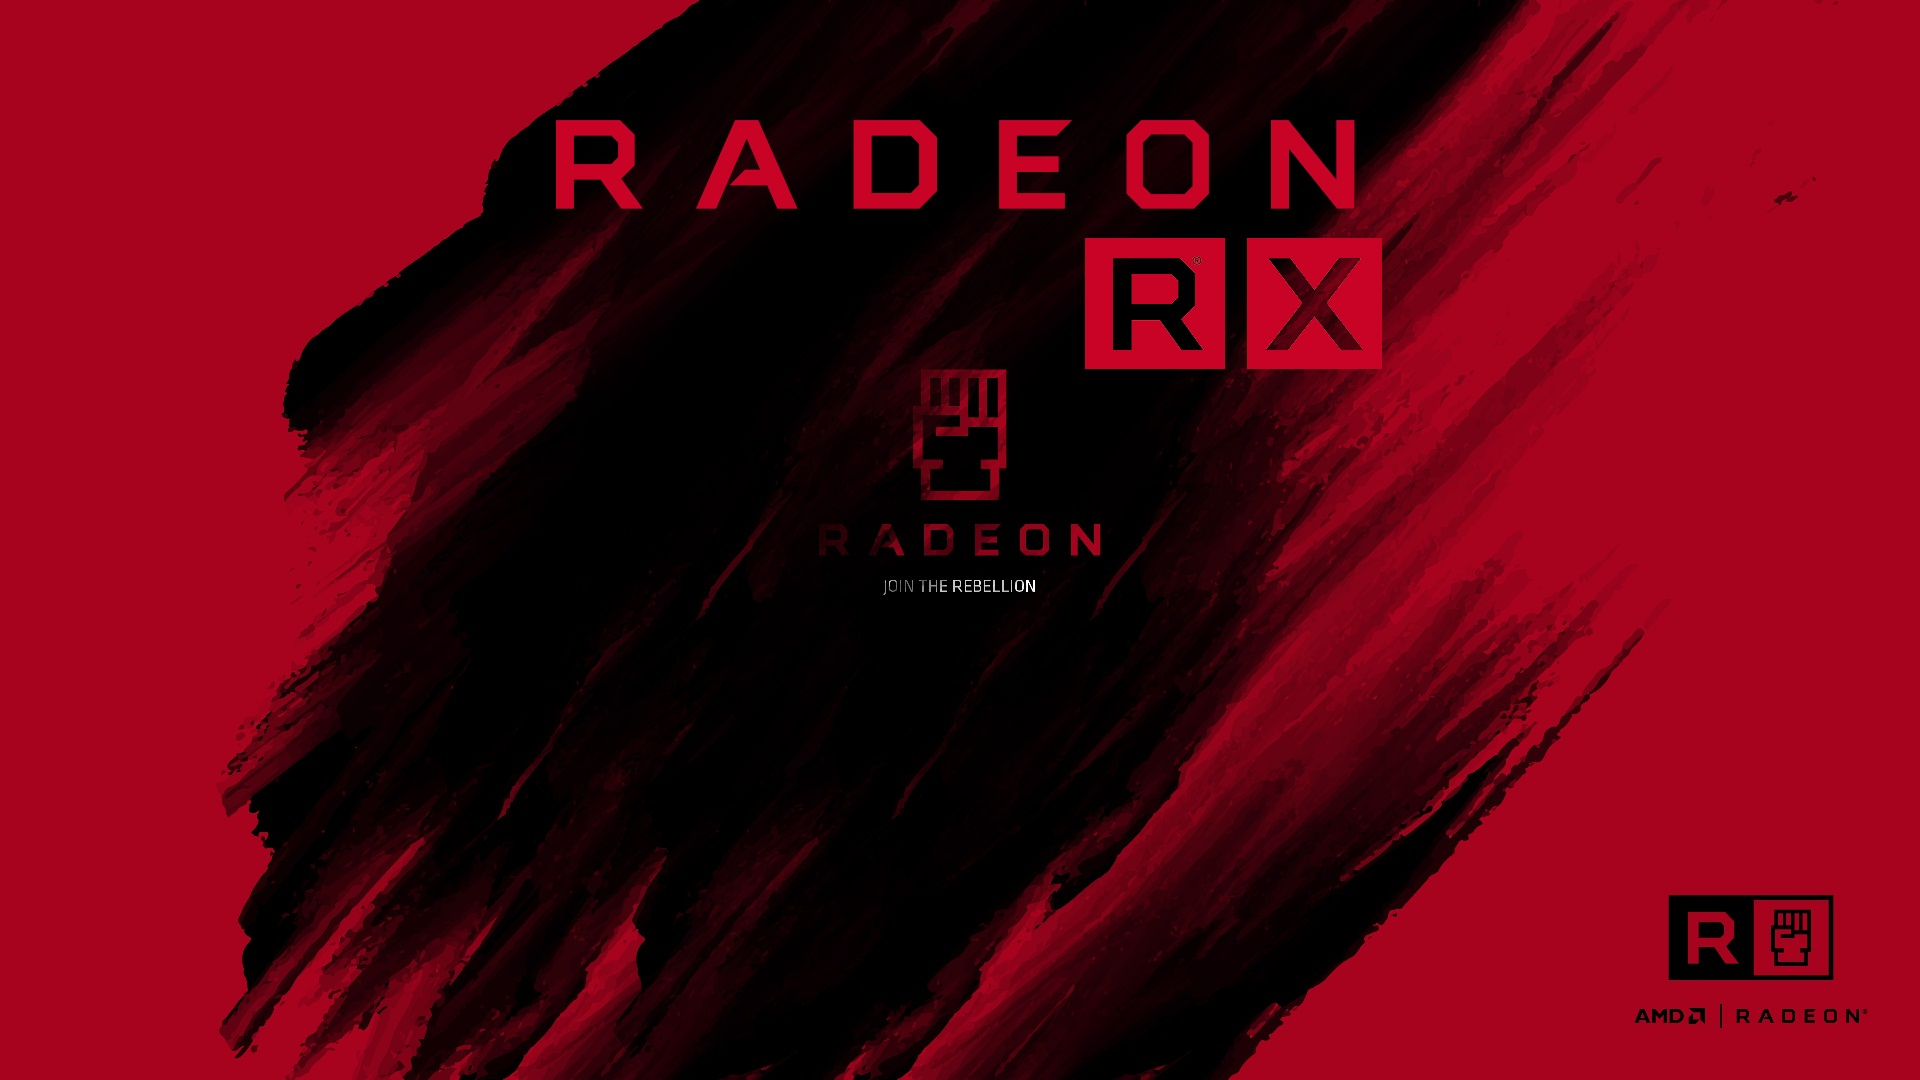 Up your game with AMD Radeon RX Vega, RX 580 or RX 570 and get the